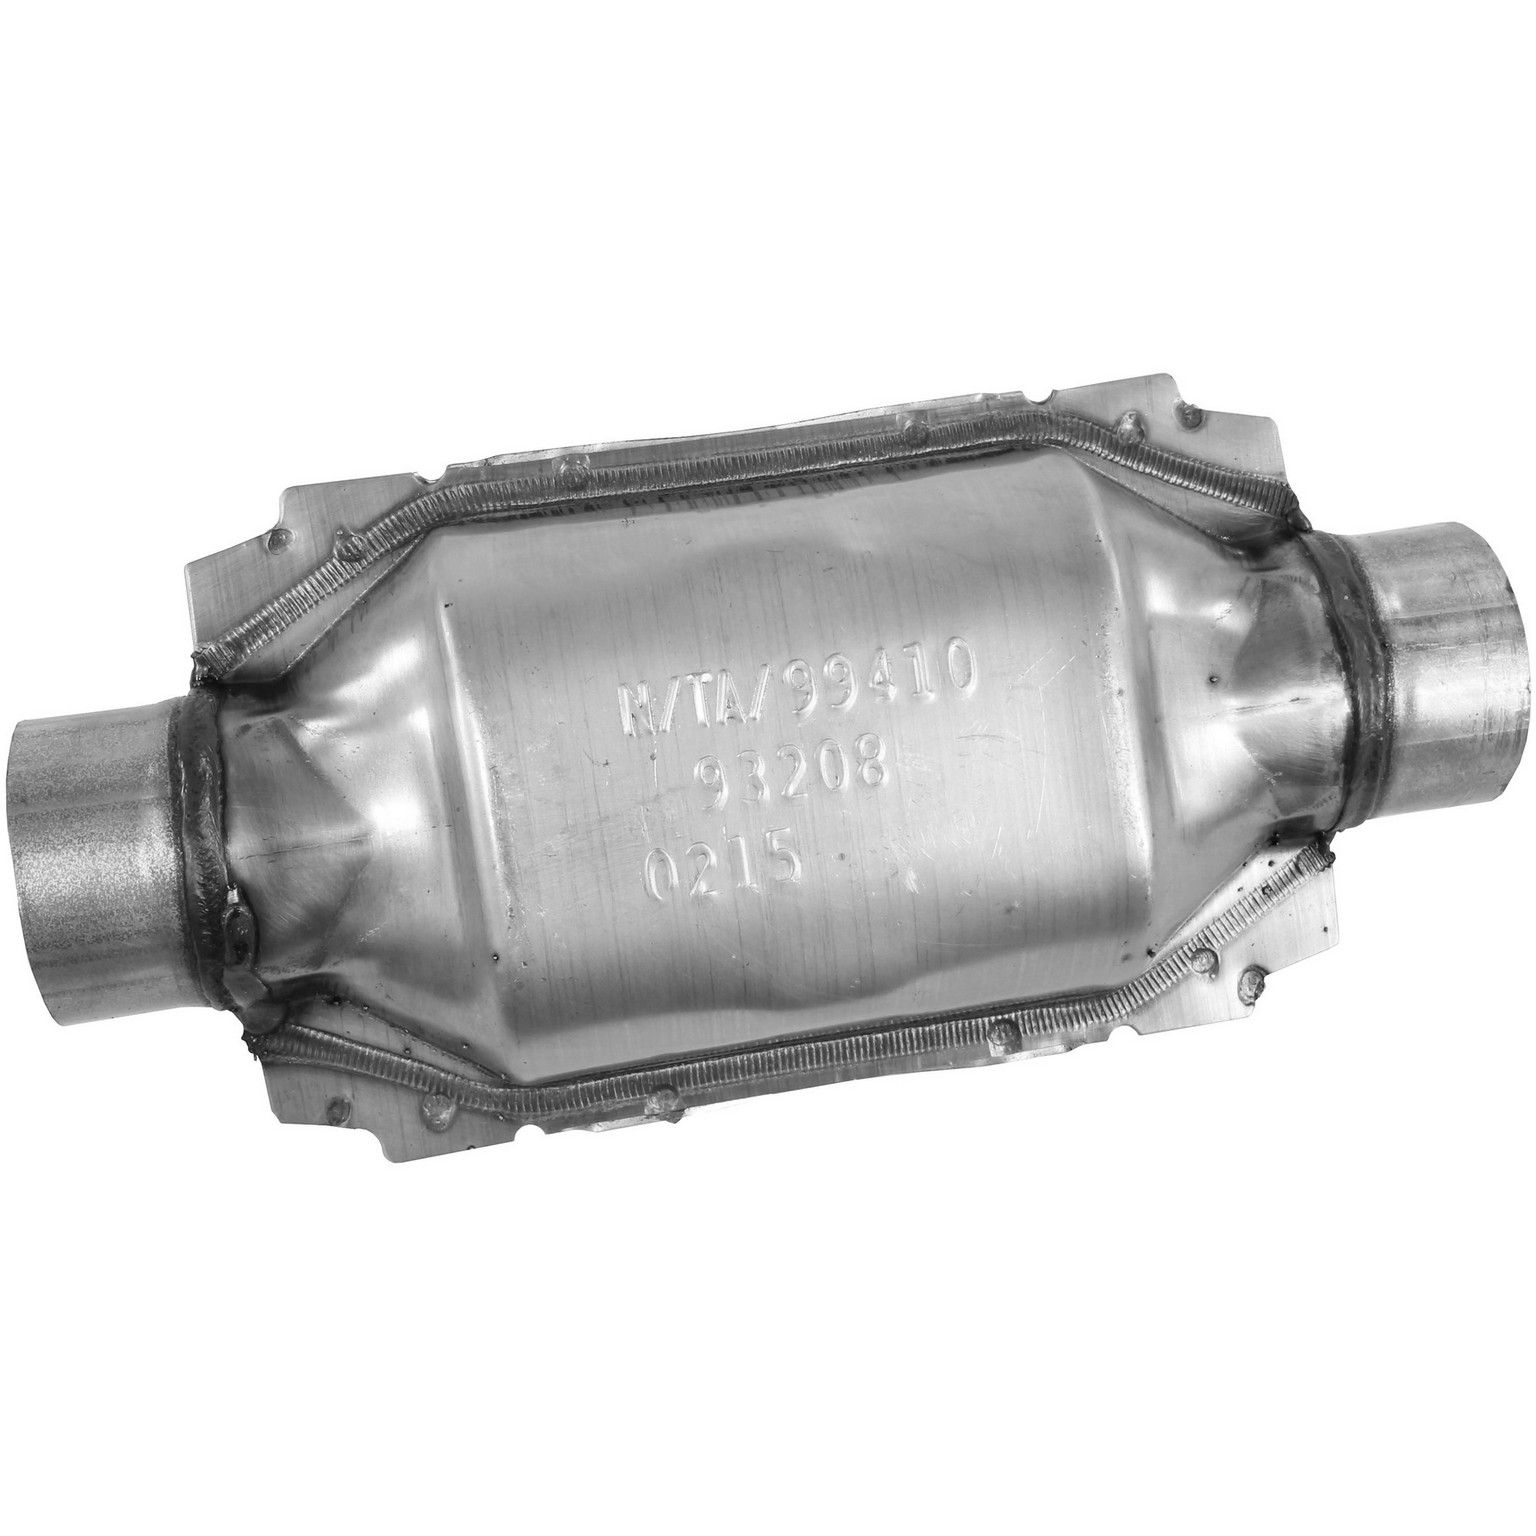 2000 Jeep Cherokee Catalytic Converter Rear 6 Cyl 40l Walker 93208 From 12100 California Emission Models Not Legal For Sale In The State Of: 1990 Jeep Cherokee Catalytic Converter At Woreks.co